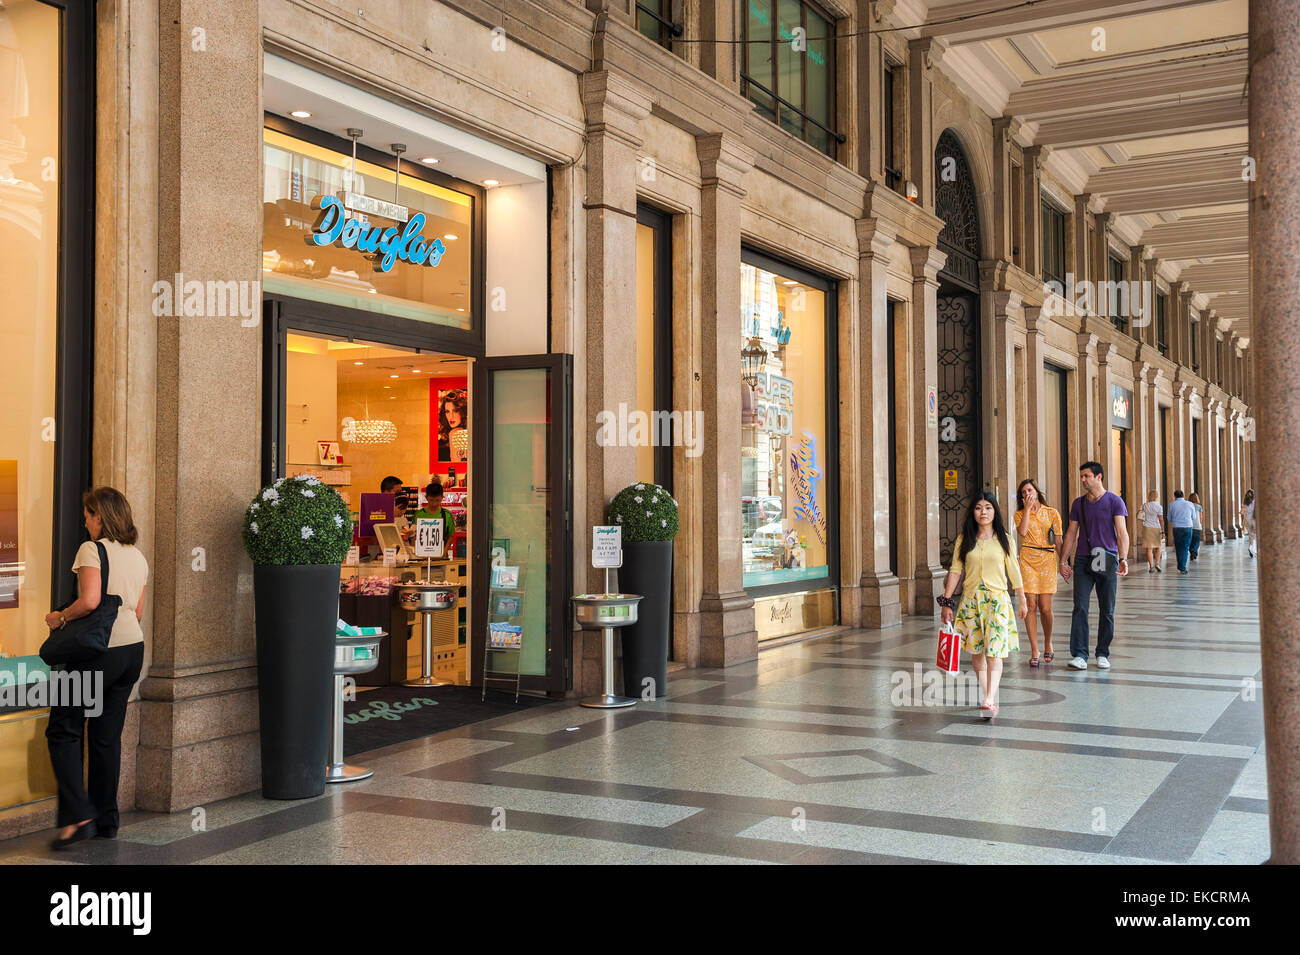 Turin shopping arcade, view of people walking under a colonnade in the luxury retail district of the Via Roma, Turin, - Stock Image